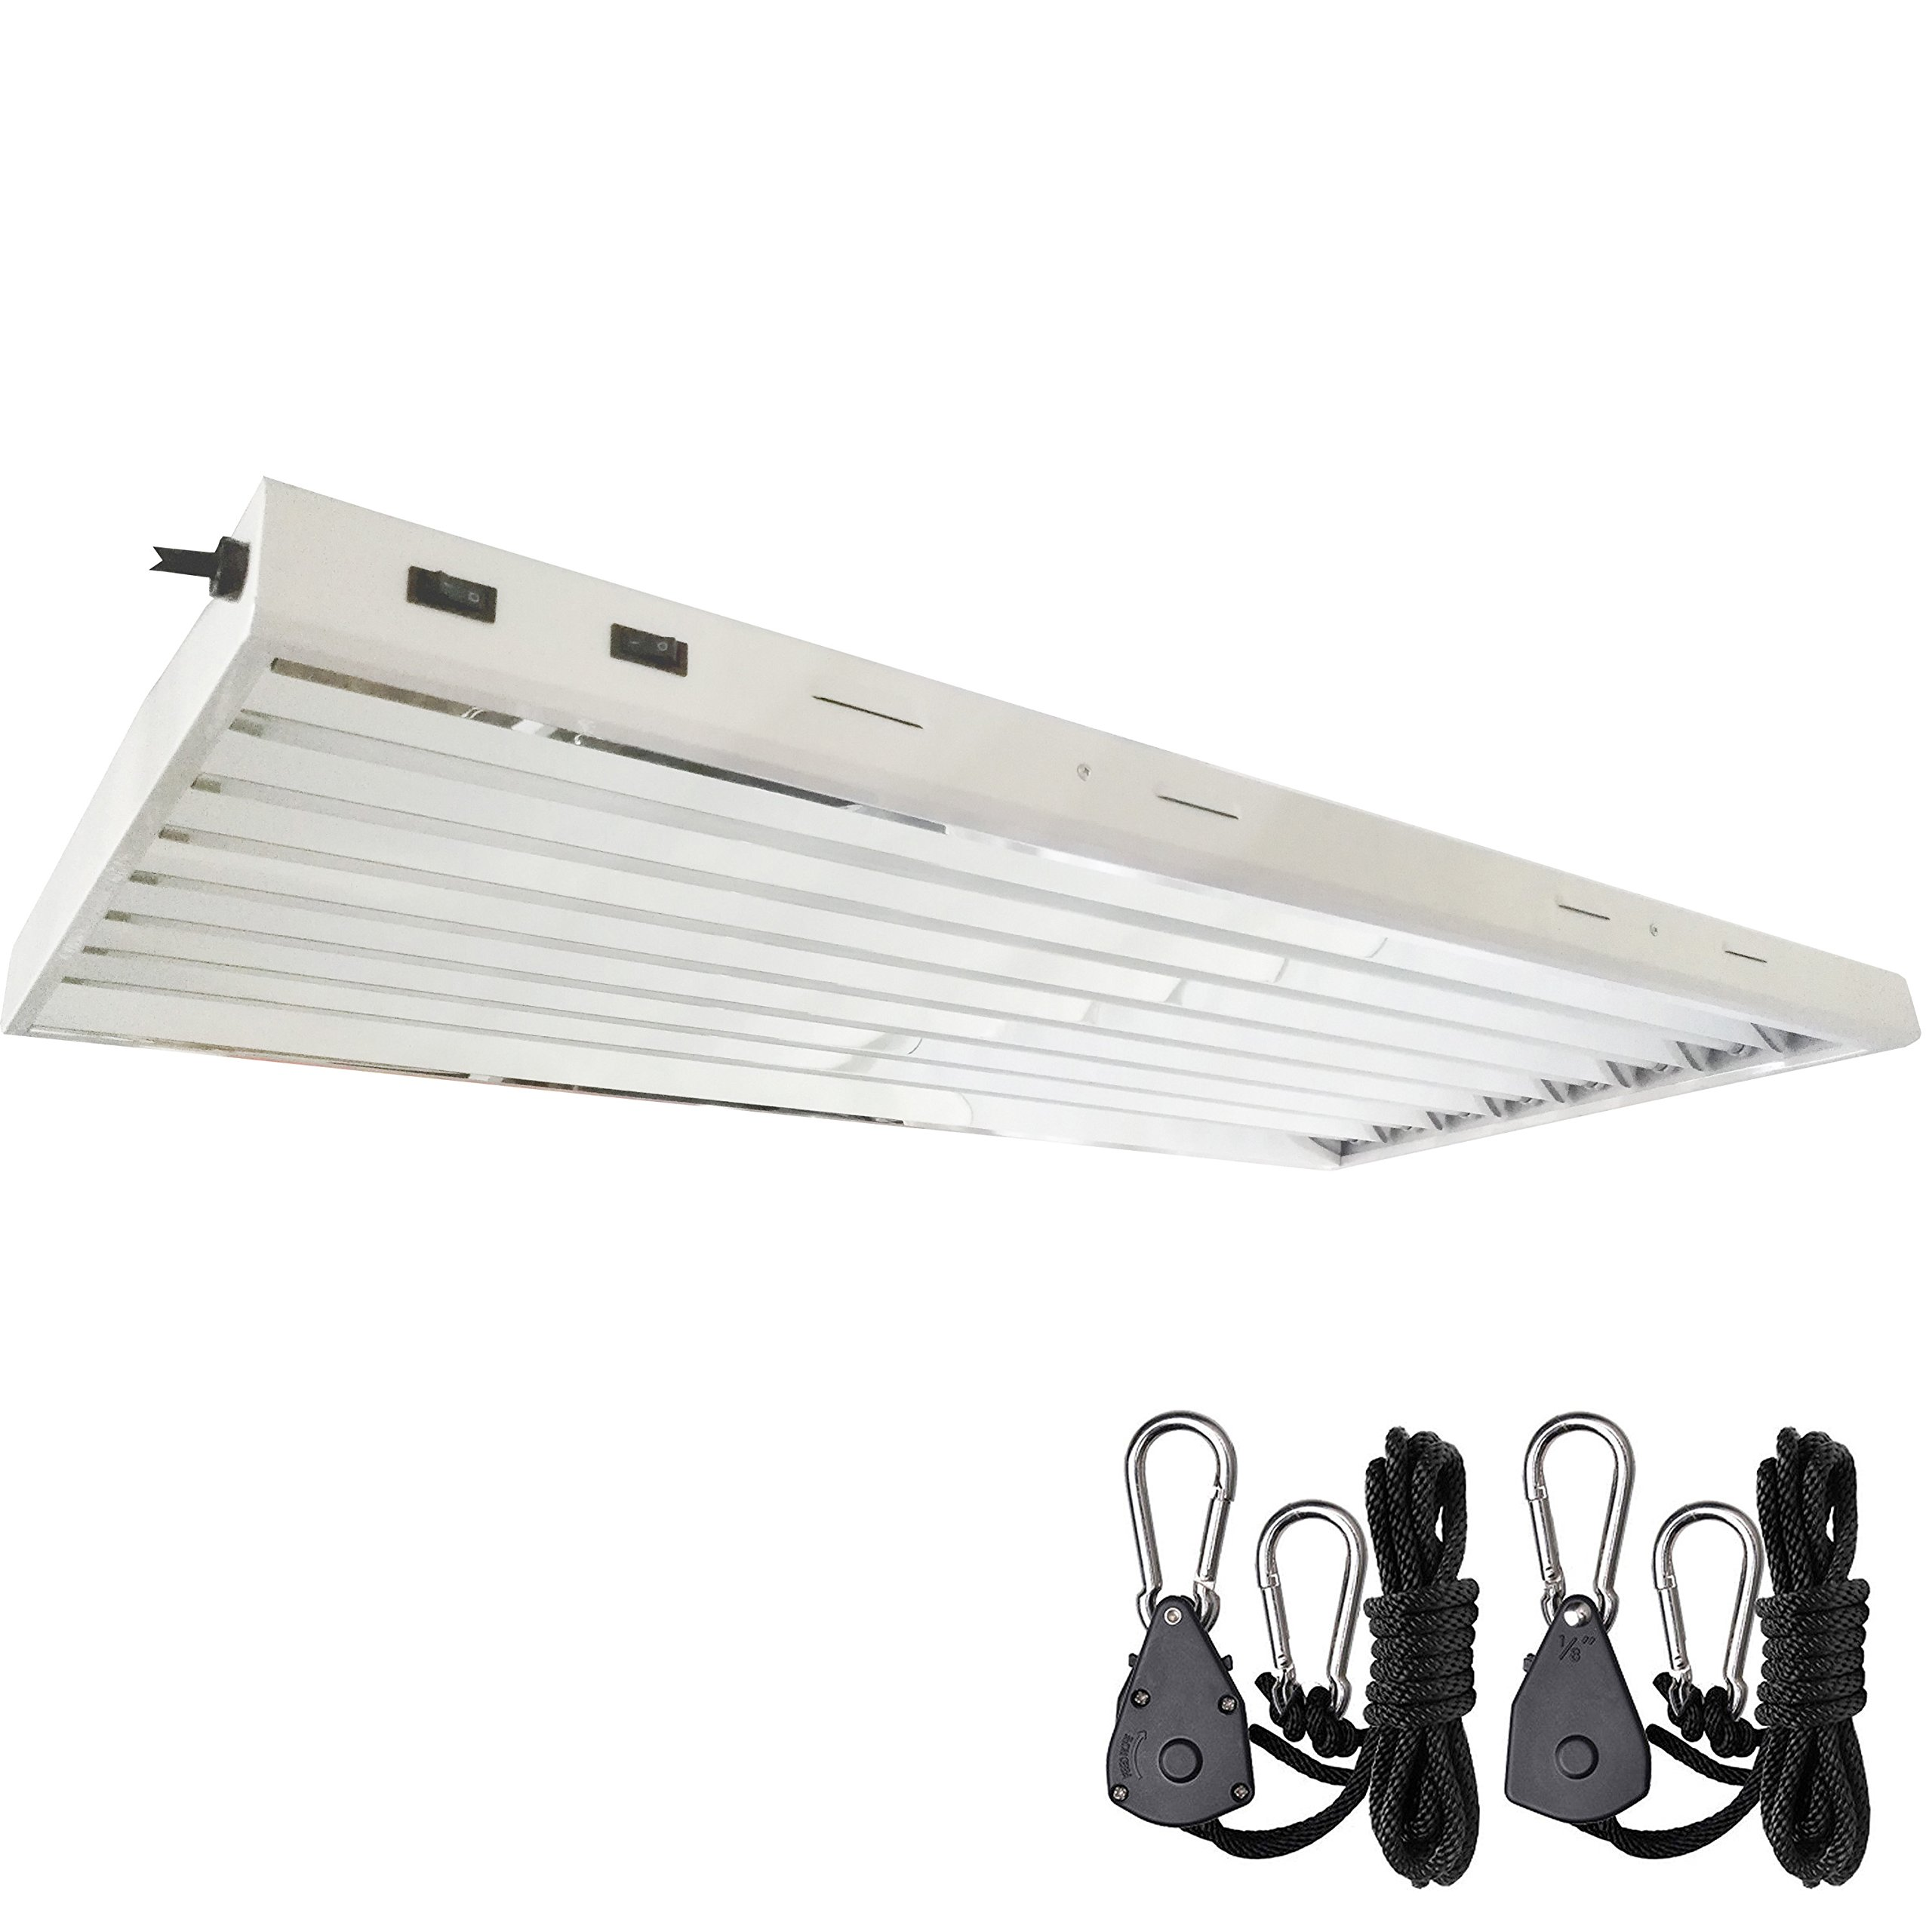 Hydro Crunch 4 ft. 8-Bulb 432-Watt T5 High Output Fluorescent Grow Light Fixture by Hydro Crunch